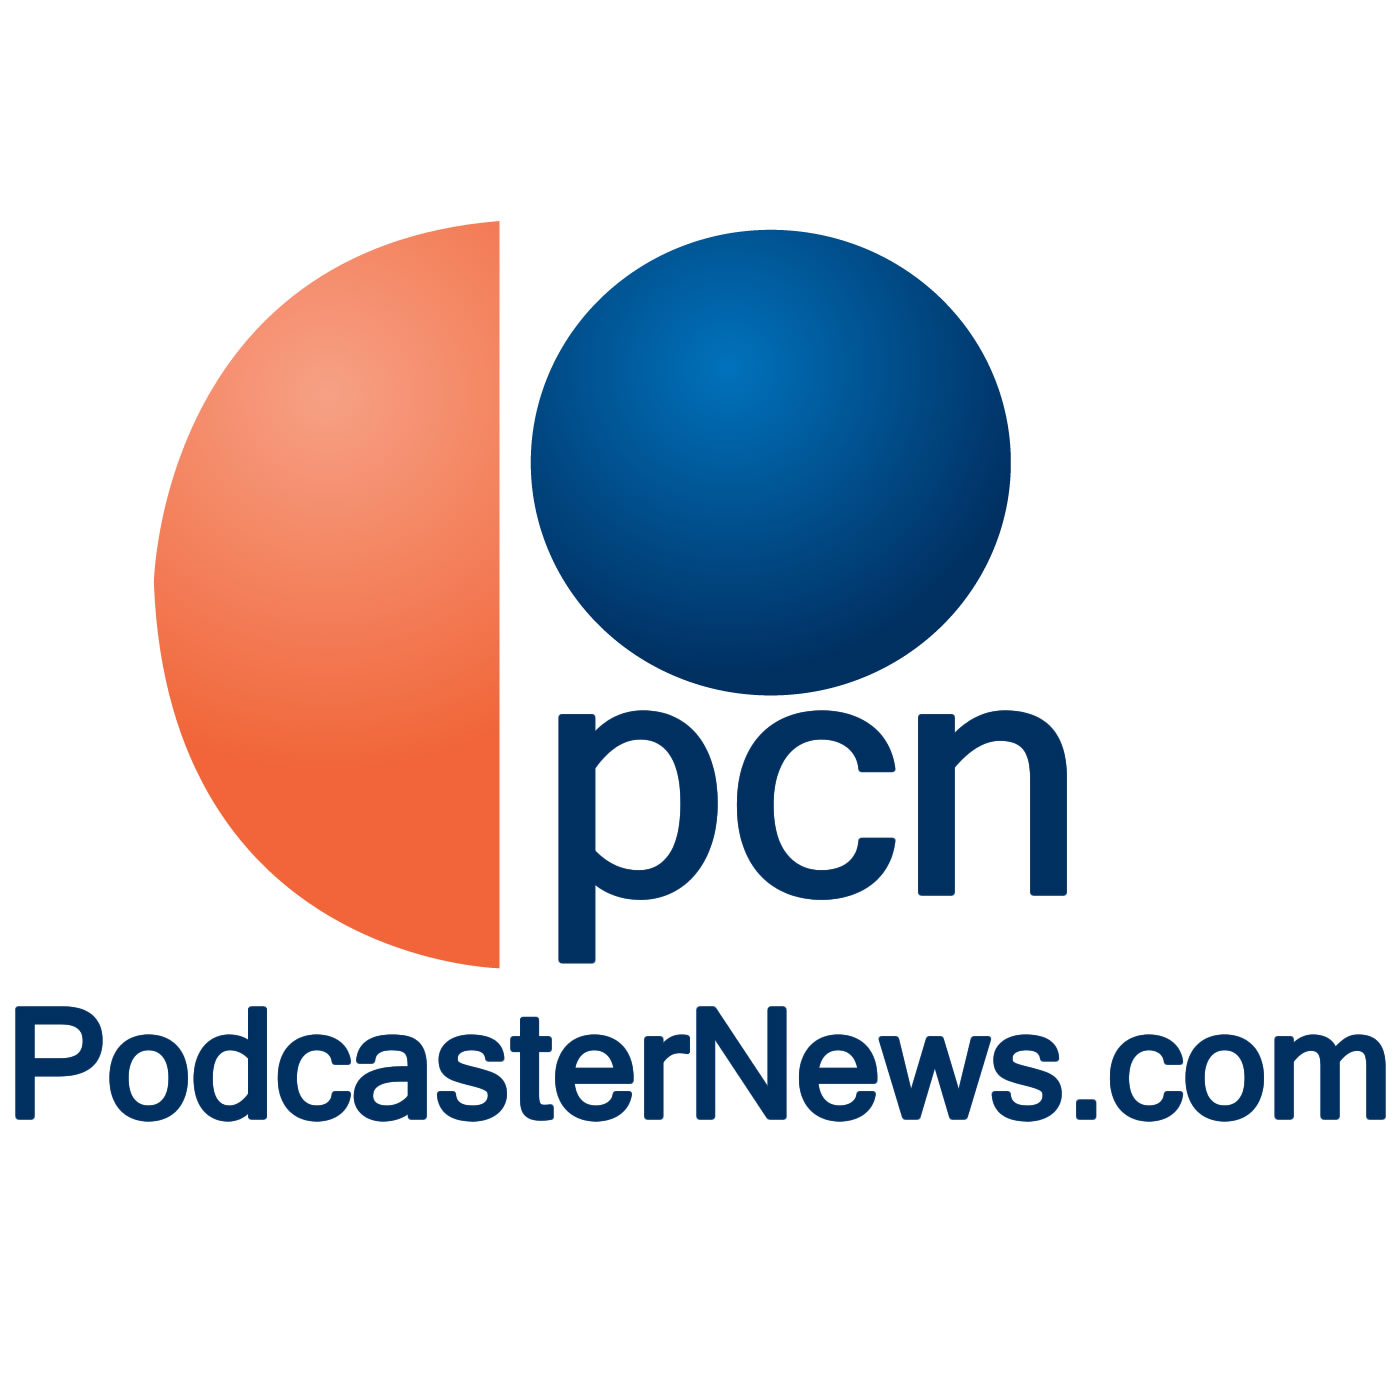 Podcaster News